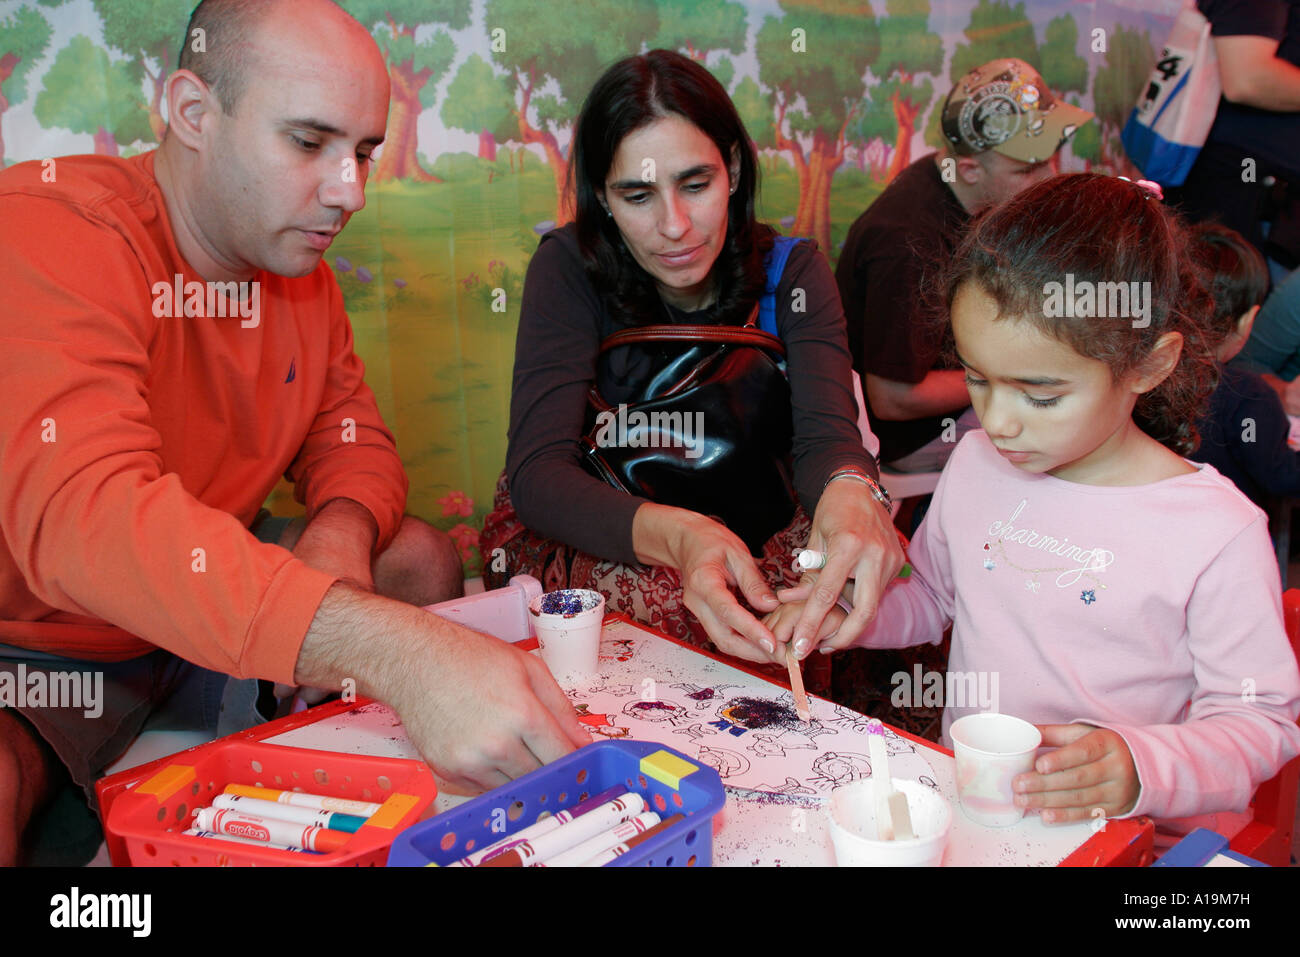 MiamiMiami Florida Dade Community College Wolfson Campus Book Fair International Mid East family girl crafts - Stock Image